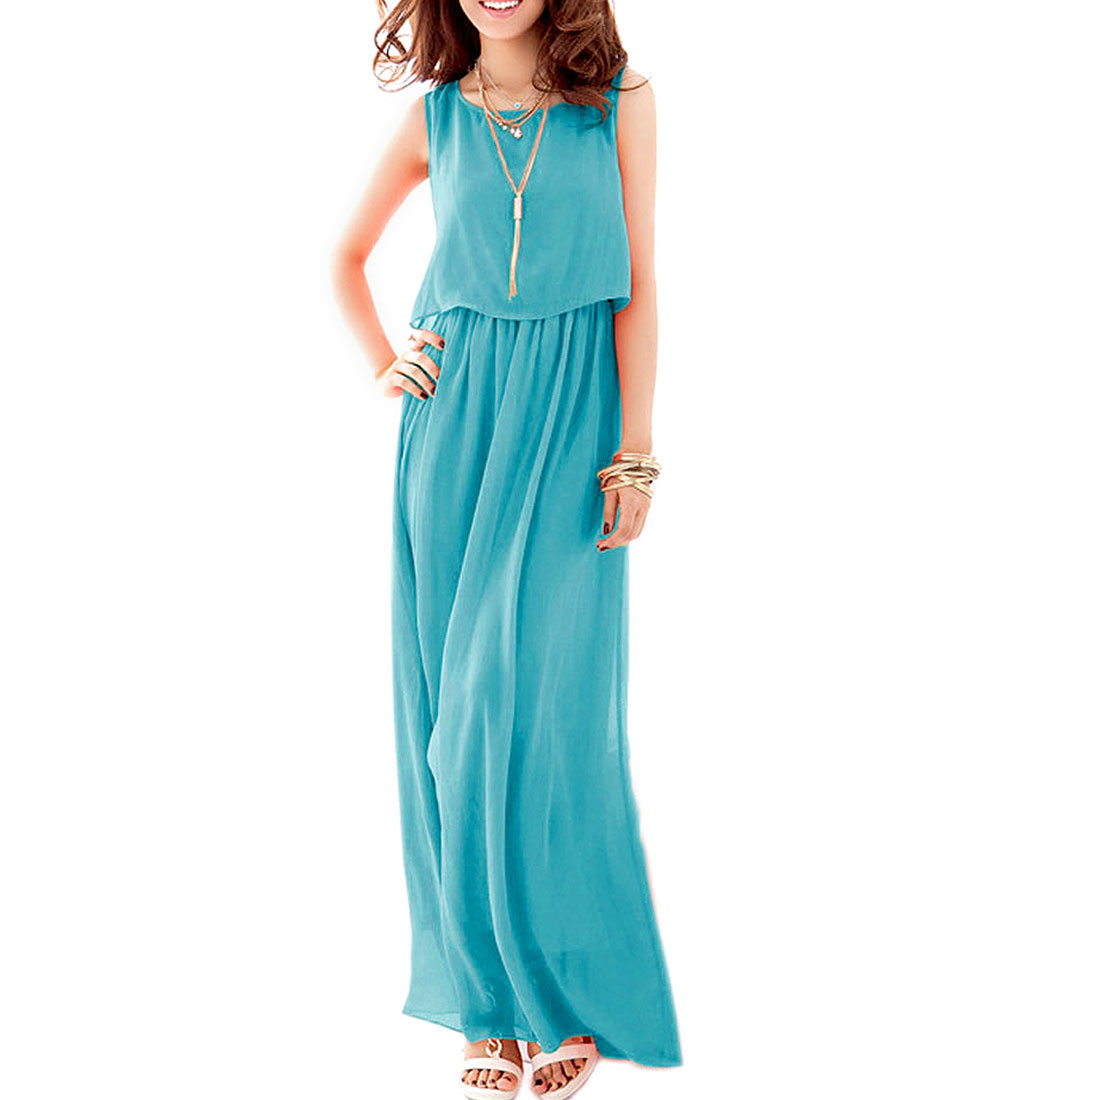 Scoop Neck Sleeveless Elastic Waist Maxi Dress Turquoise XS for Ladies